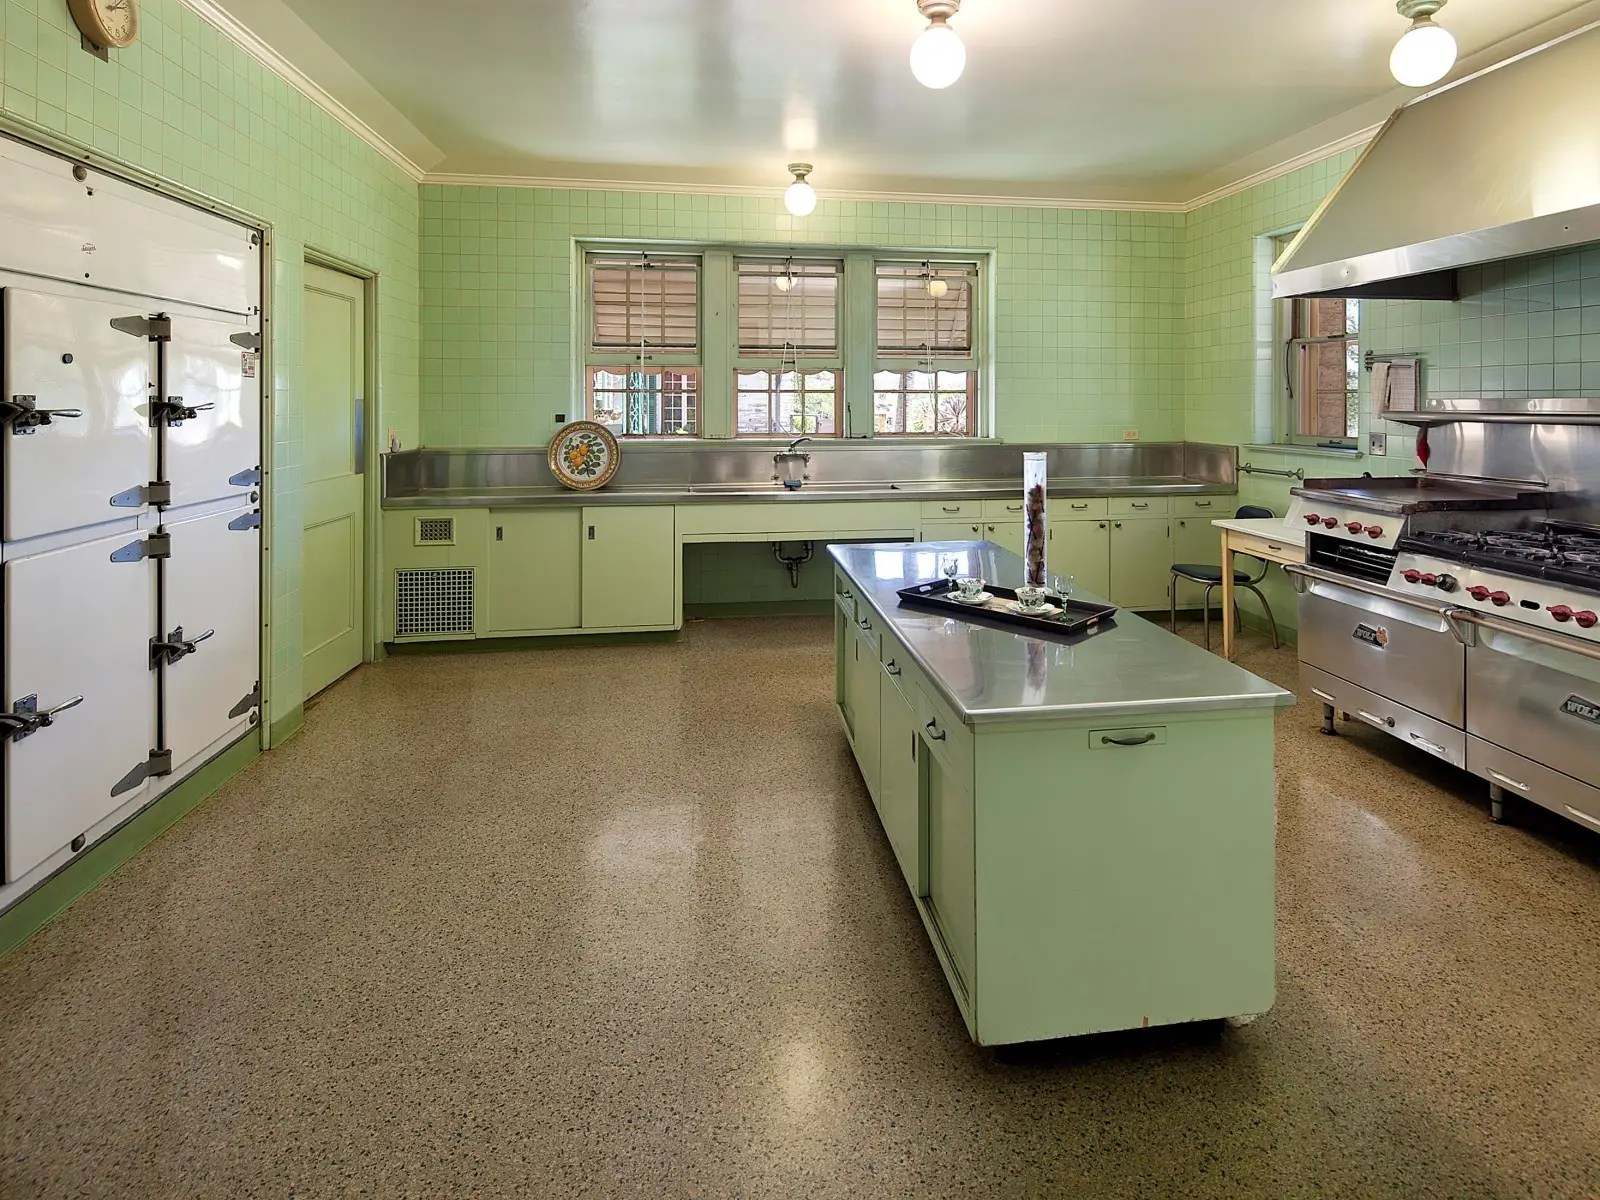 The chef's kitchen is huge with a restaurant-sized refrigerator and stove top.